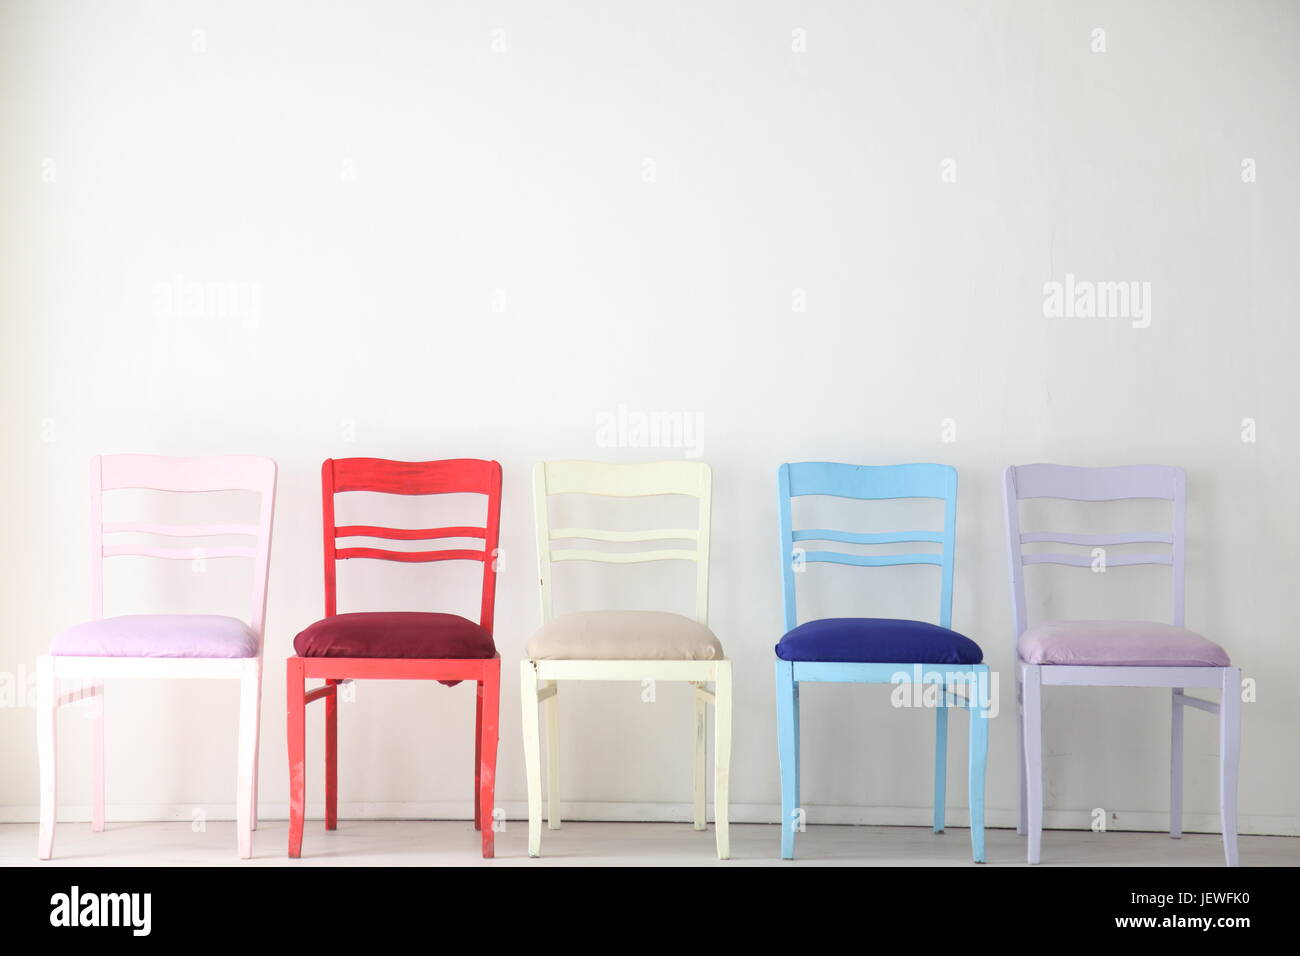 blue nursery chair rental indianapolis stock photos images white room with colorful chairs yellow red purple image